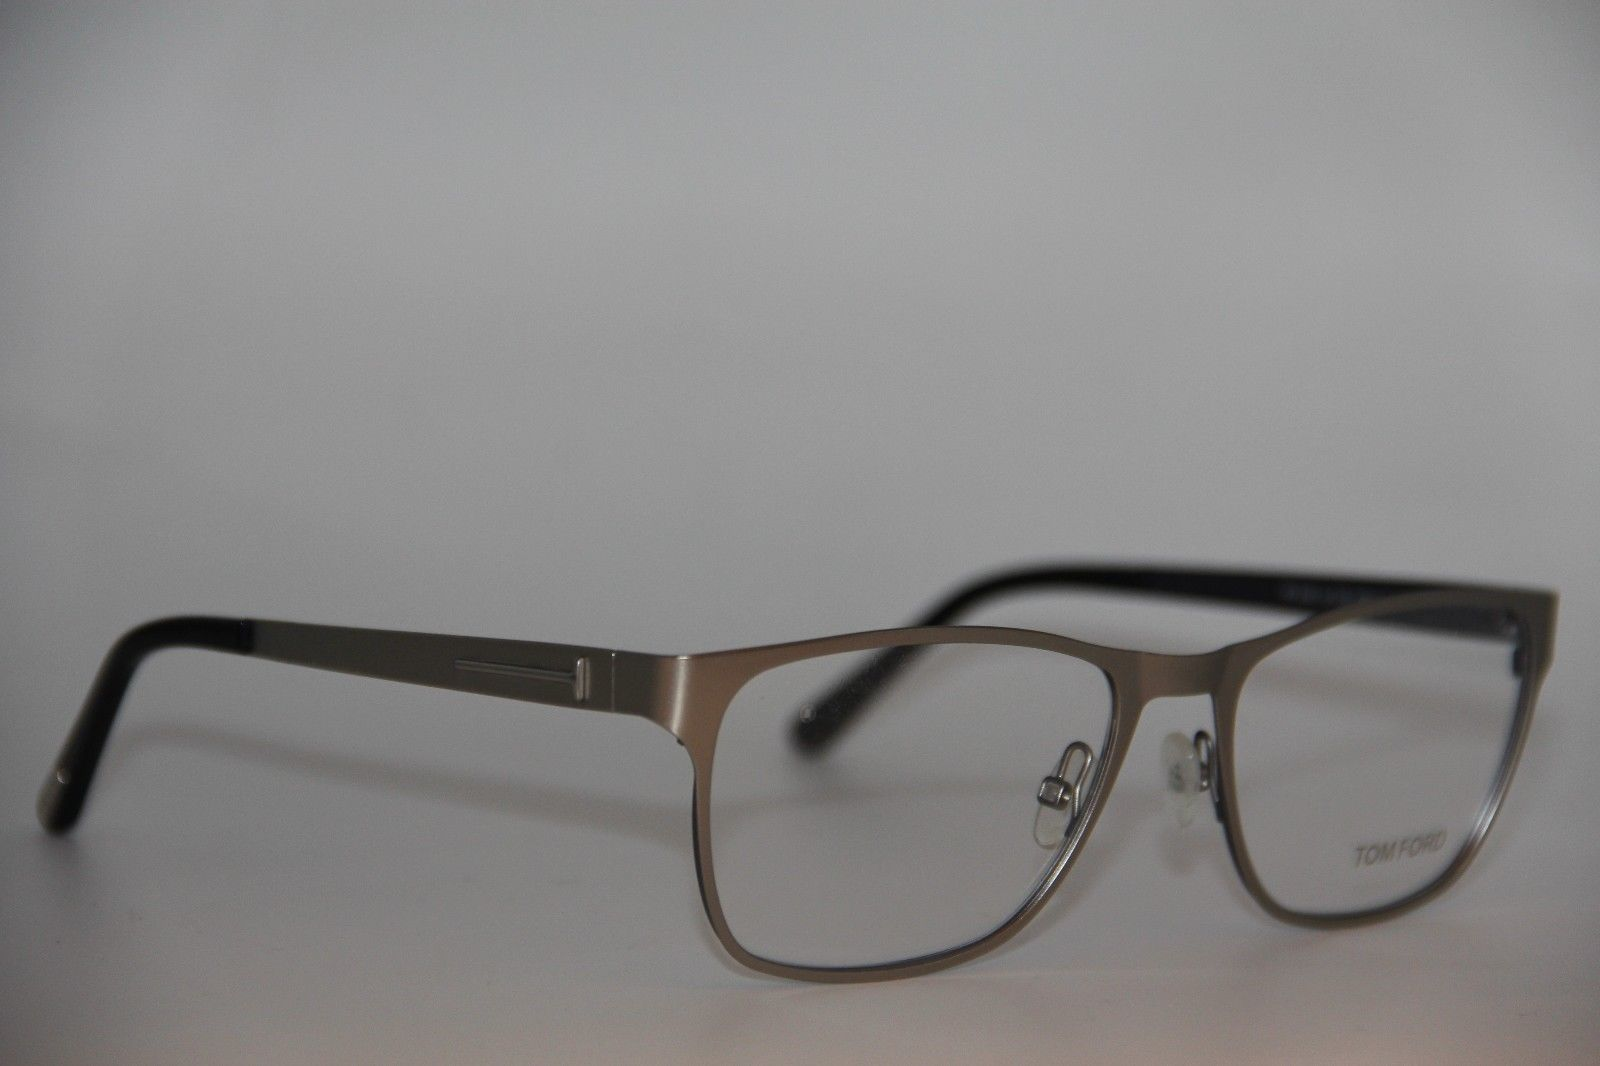 f95c8cbad2a70 NEW TOM FORD TF 5242 020 GUNMETAL EYEGLASSES AUTHENTIC RX TF5242 55-17 W